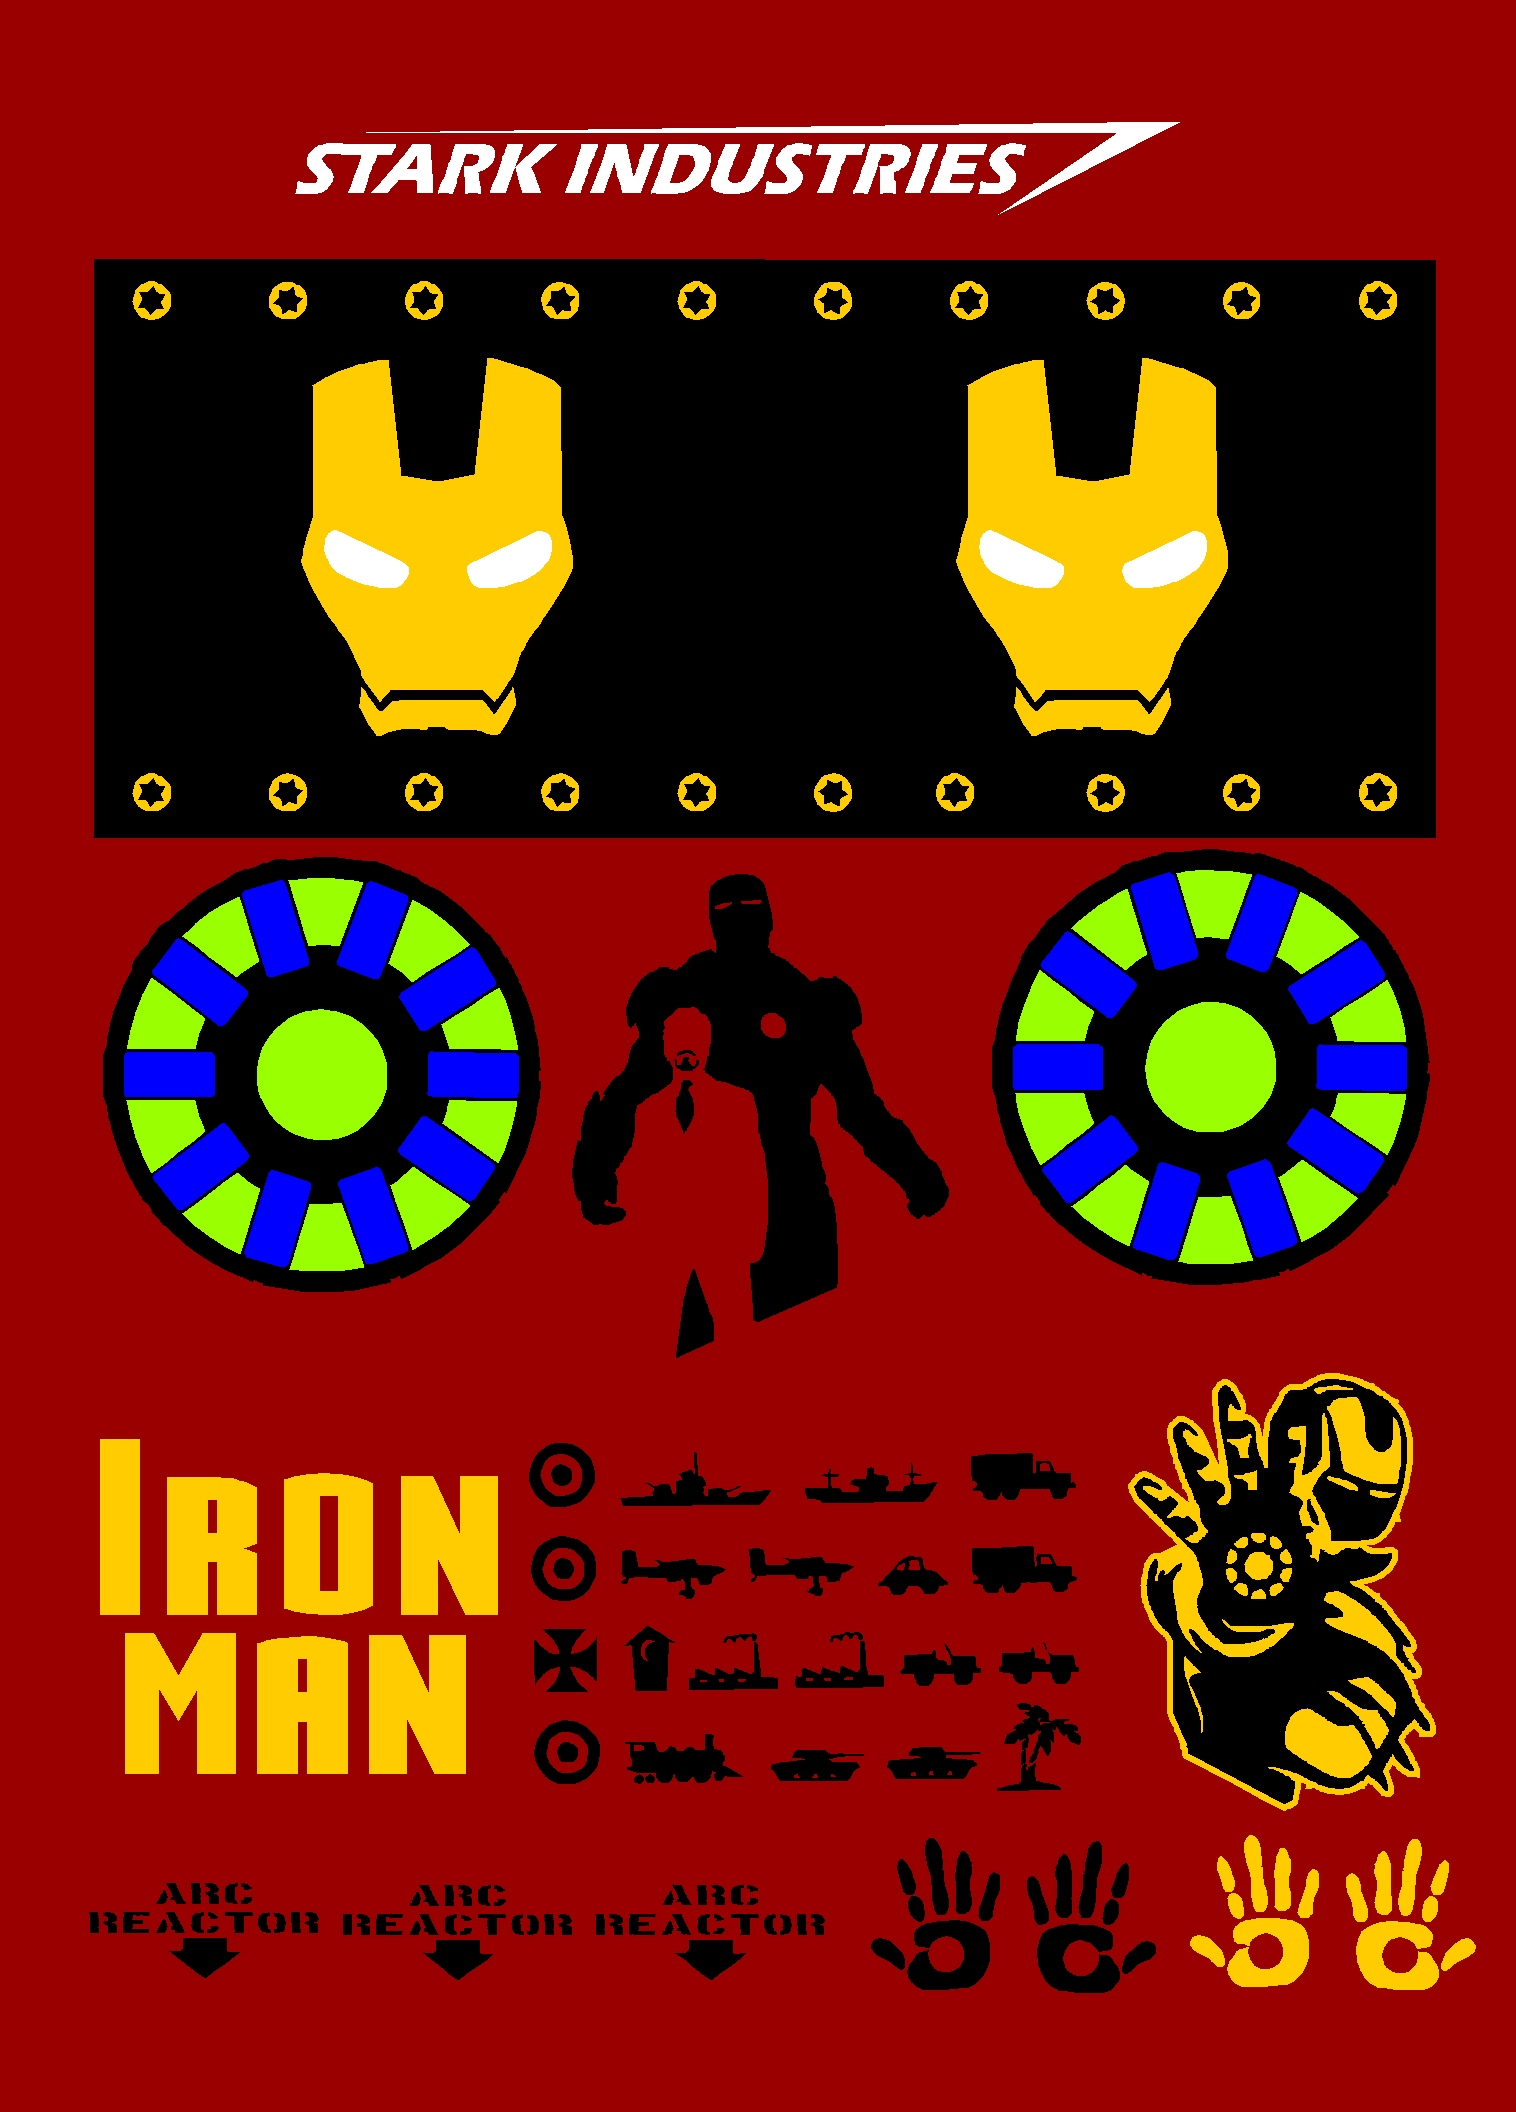 Iron man design of der red max